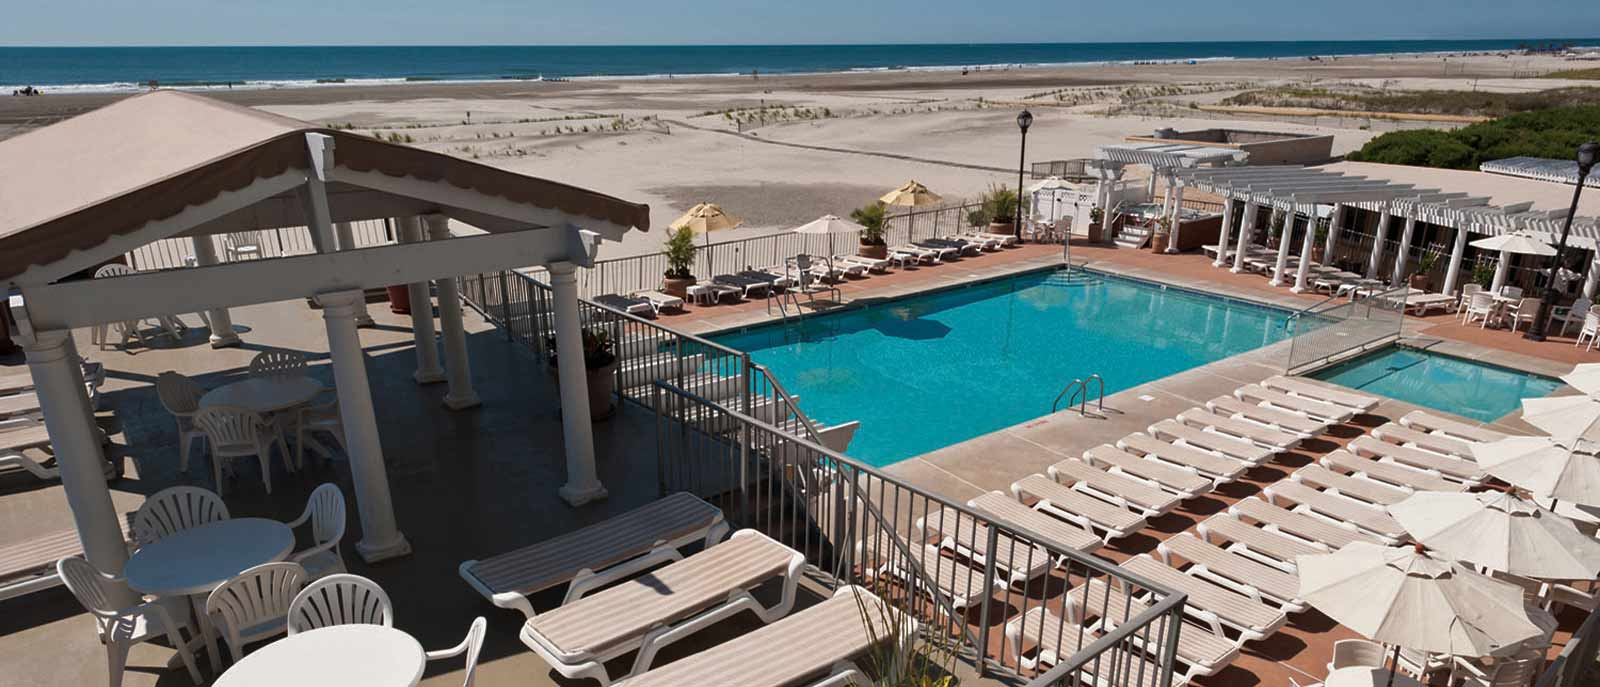 Wildwood Crest Hotel Pool